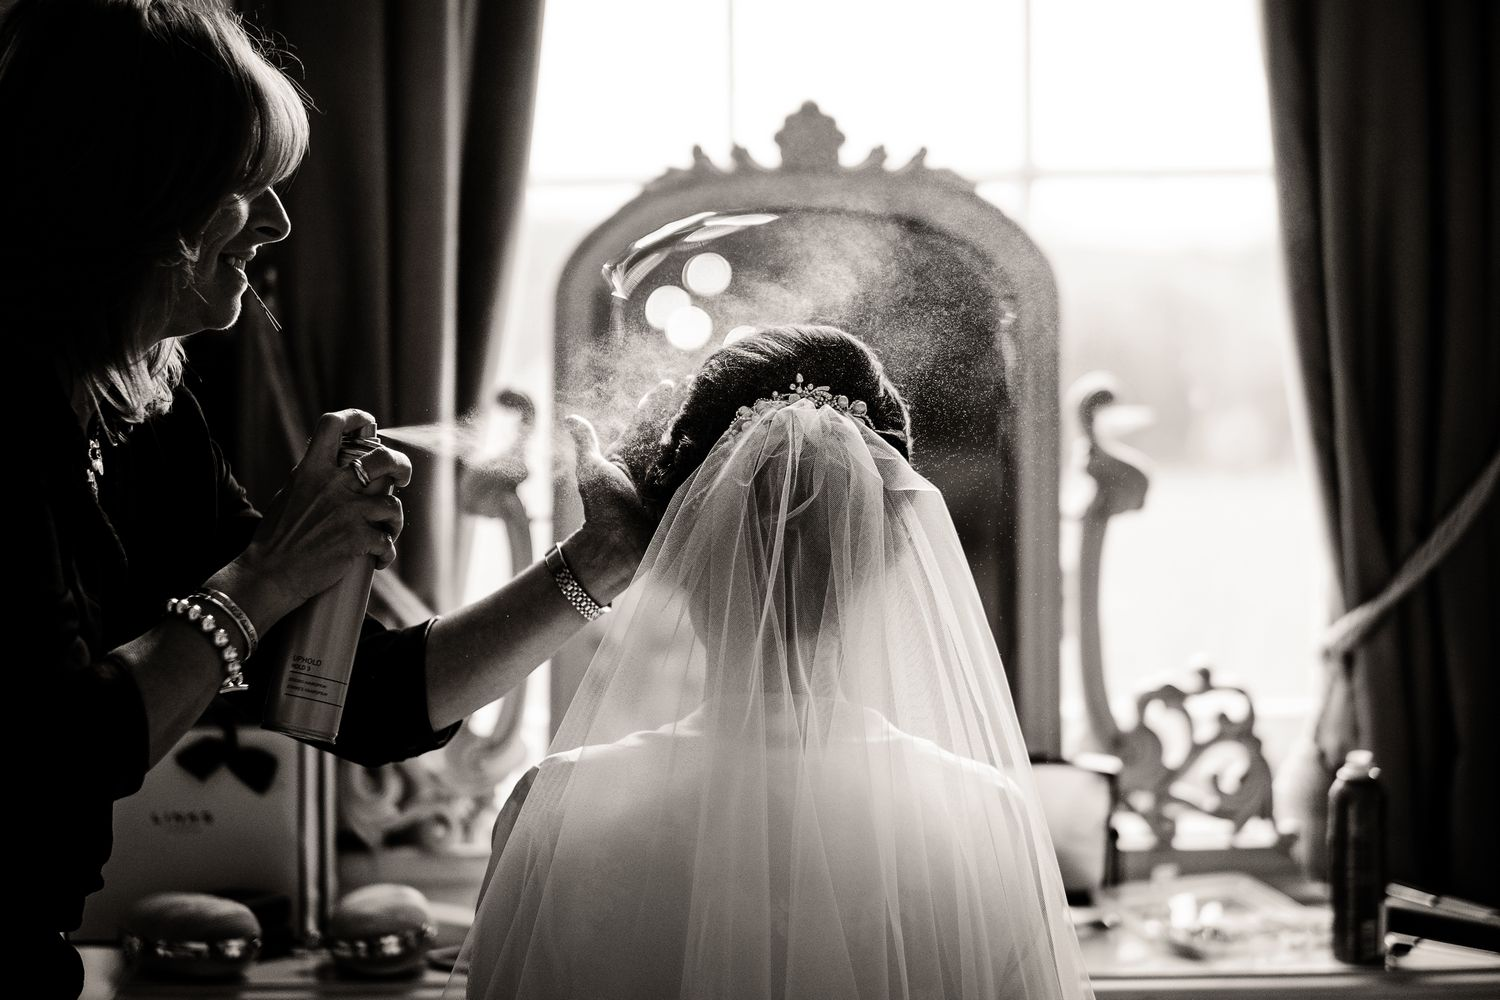 SNAP speaker Kevin Mullins will be talking about documentary wedding photography.